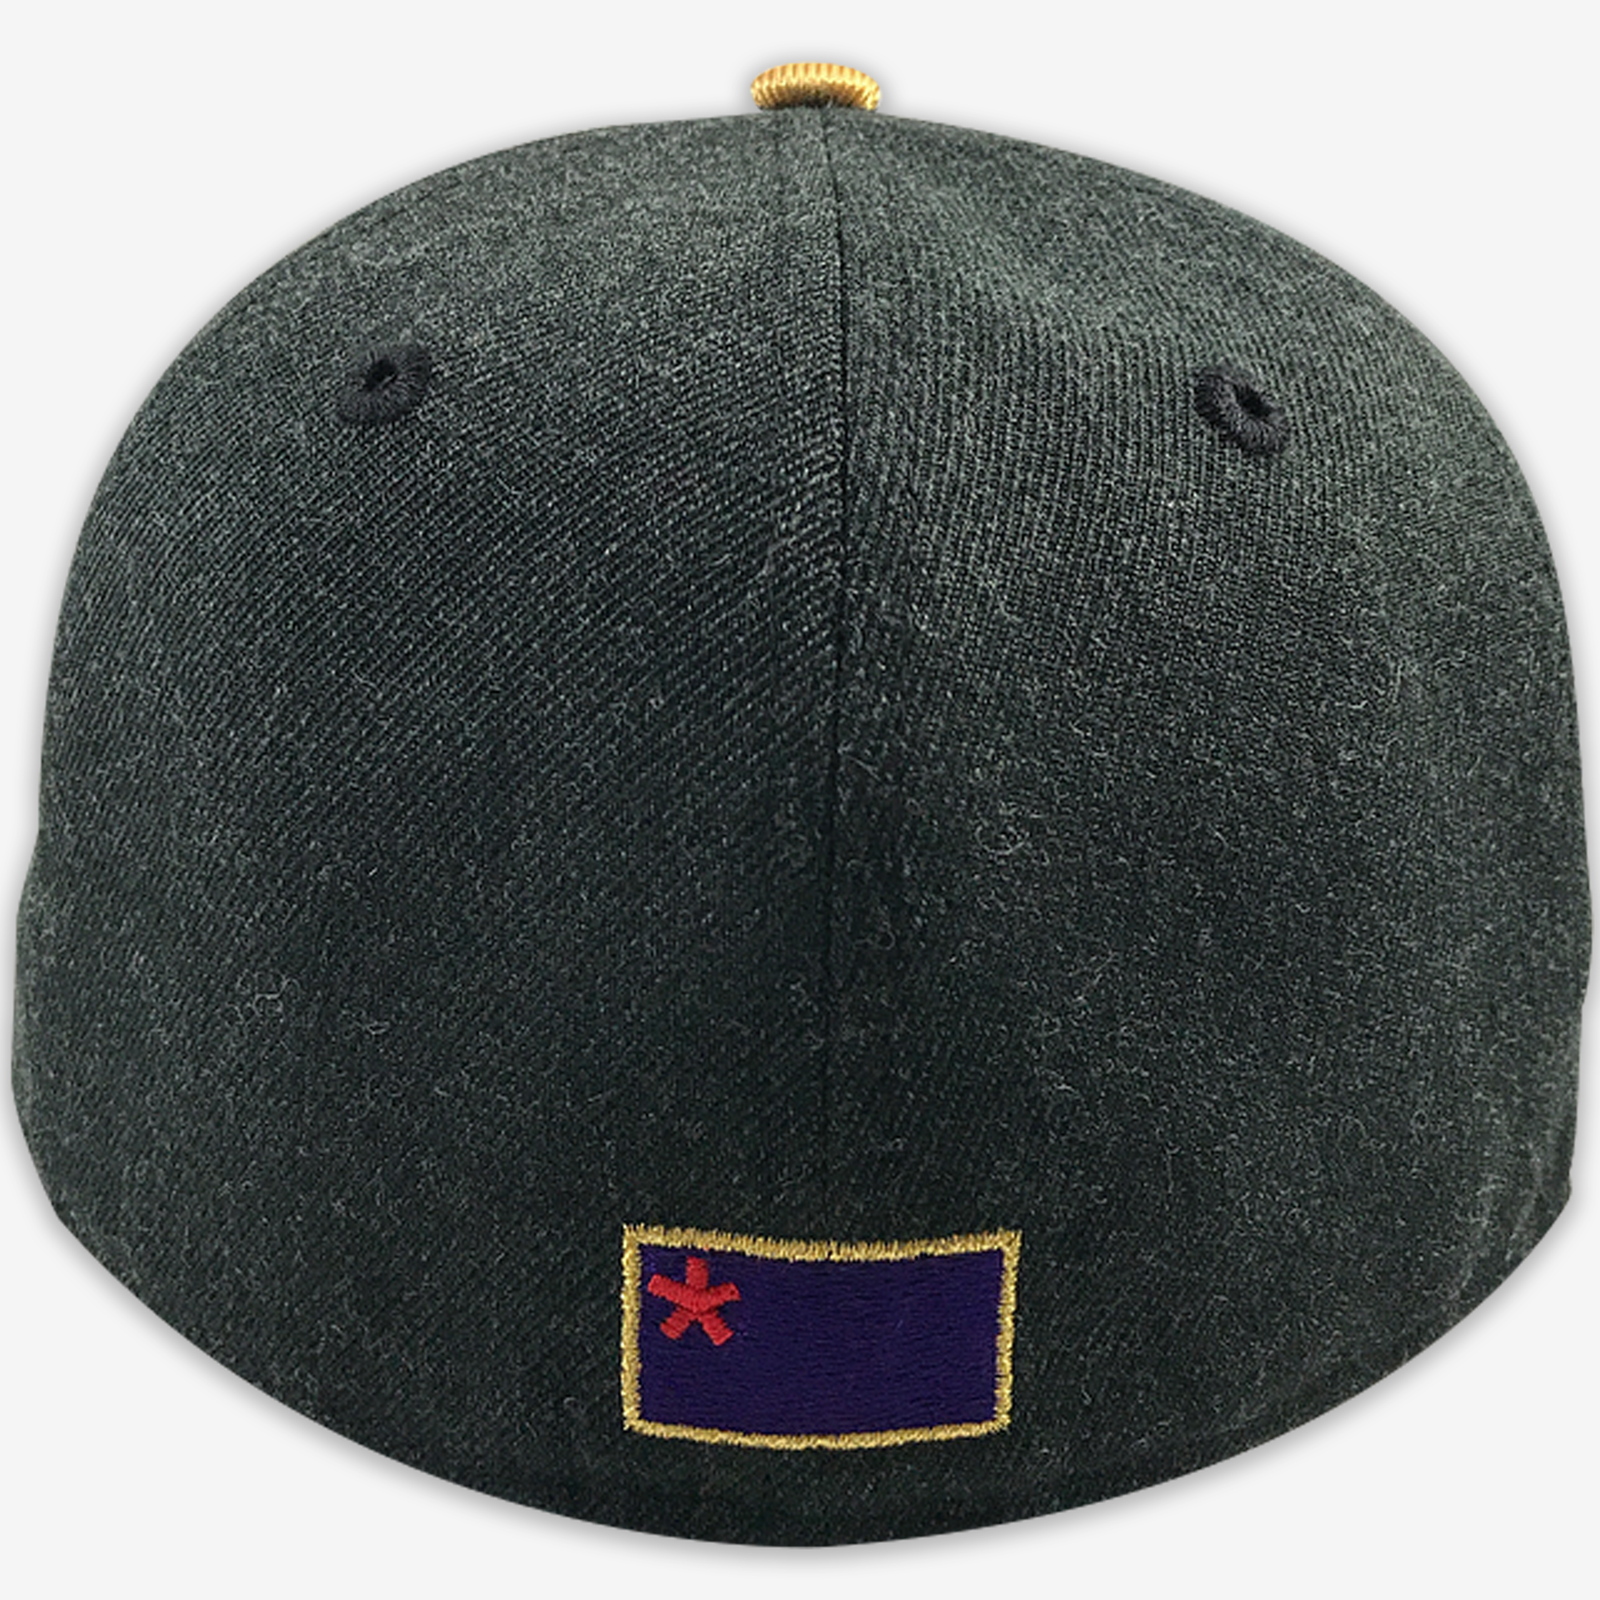 AOF Anpu (Anubis) Heather Black New Era Fitted